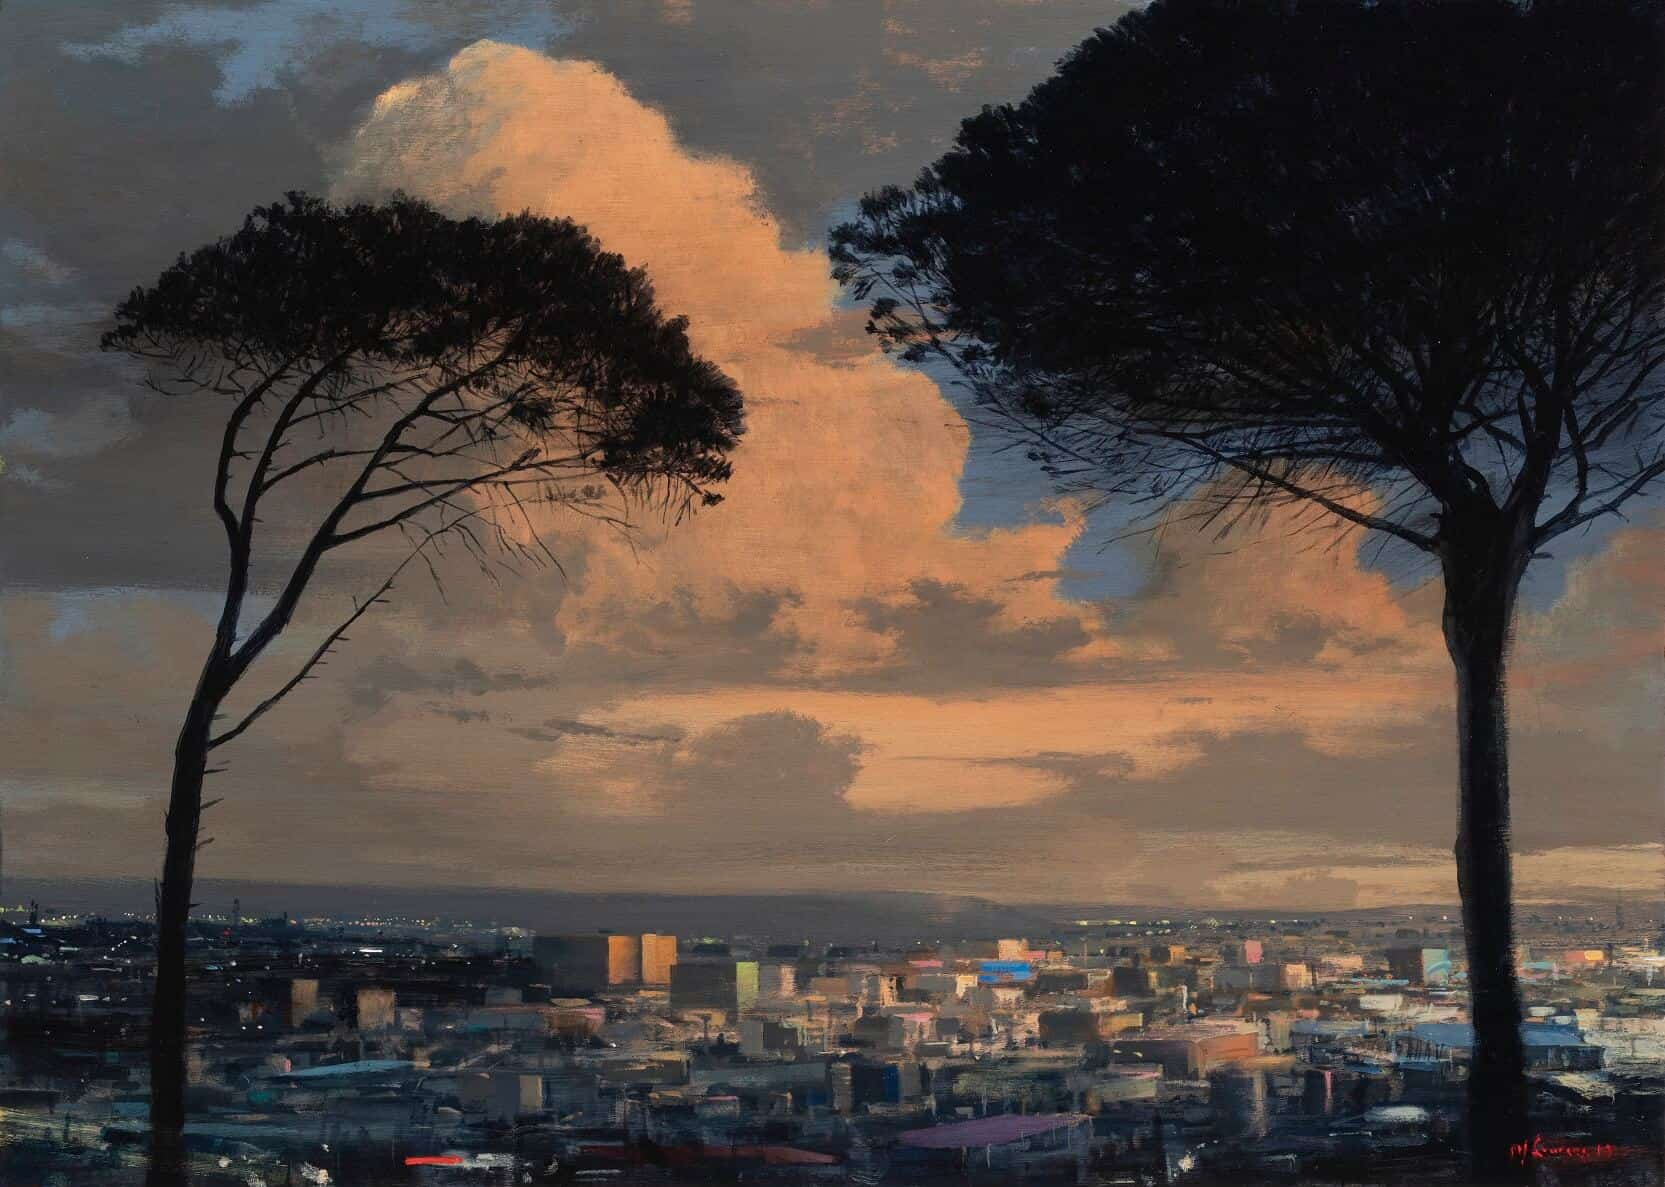 MJ Lourens, Longing through the trees, 2019. Acrylic on board, 500 x 700cm. Courtesy of the artist & La Motte Museum.